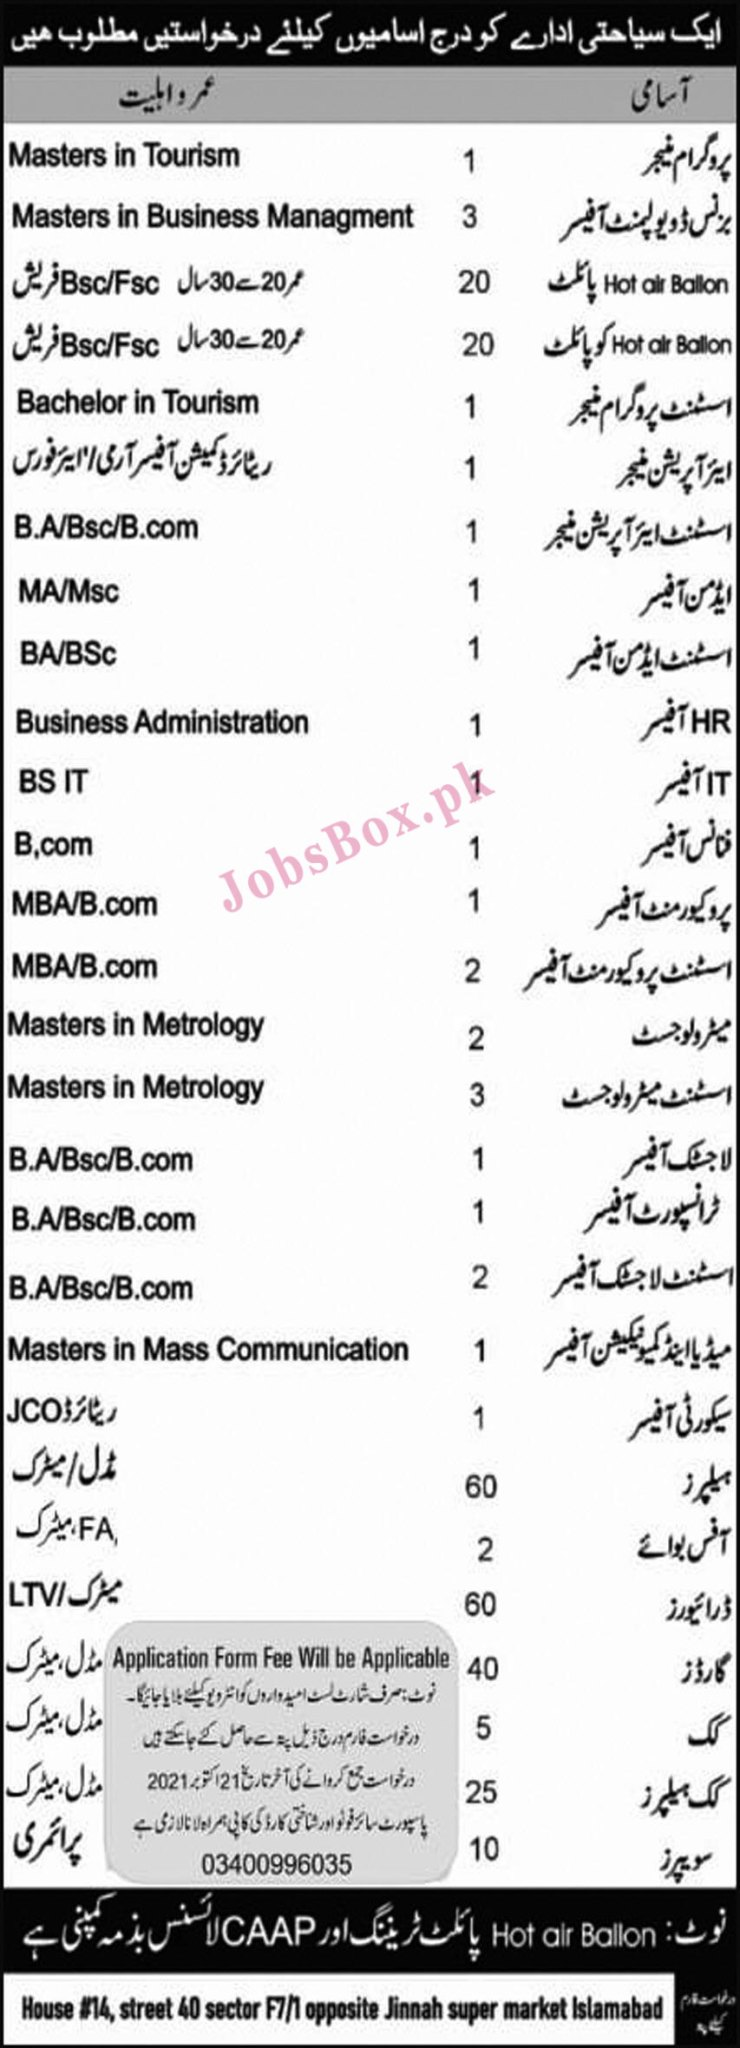 Tourism Agency Islamabad Jobs 2021 in Pakistan